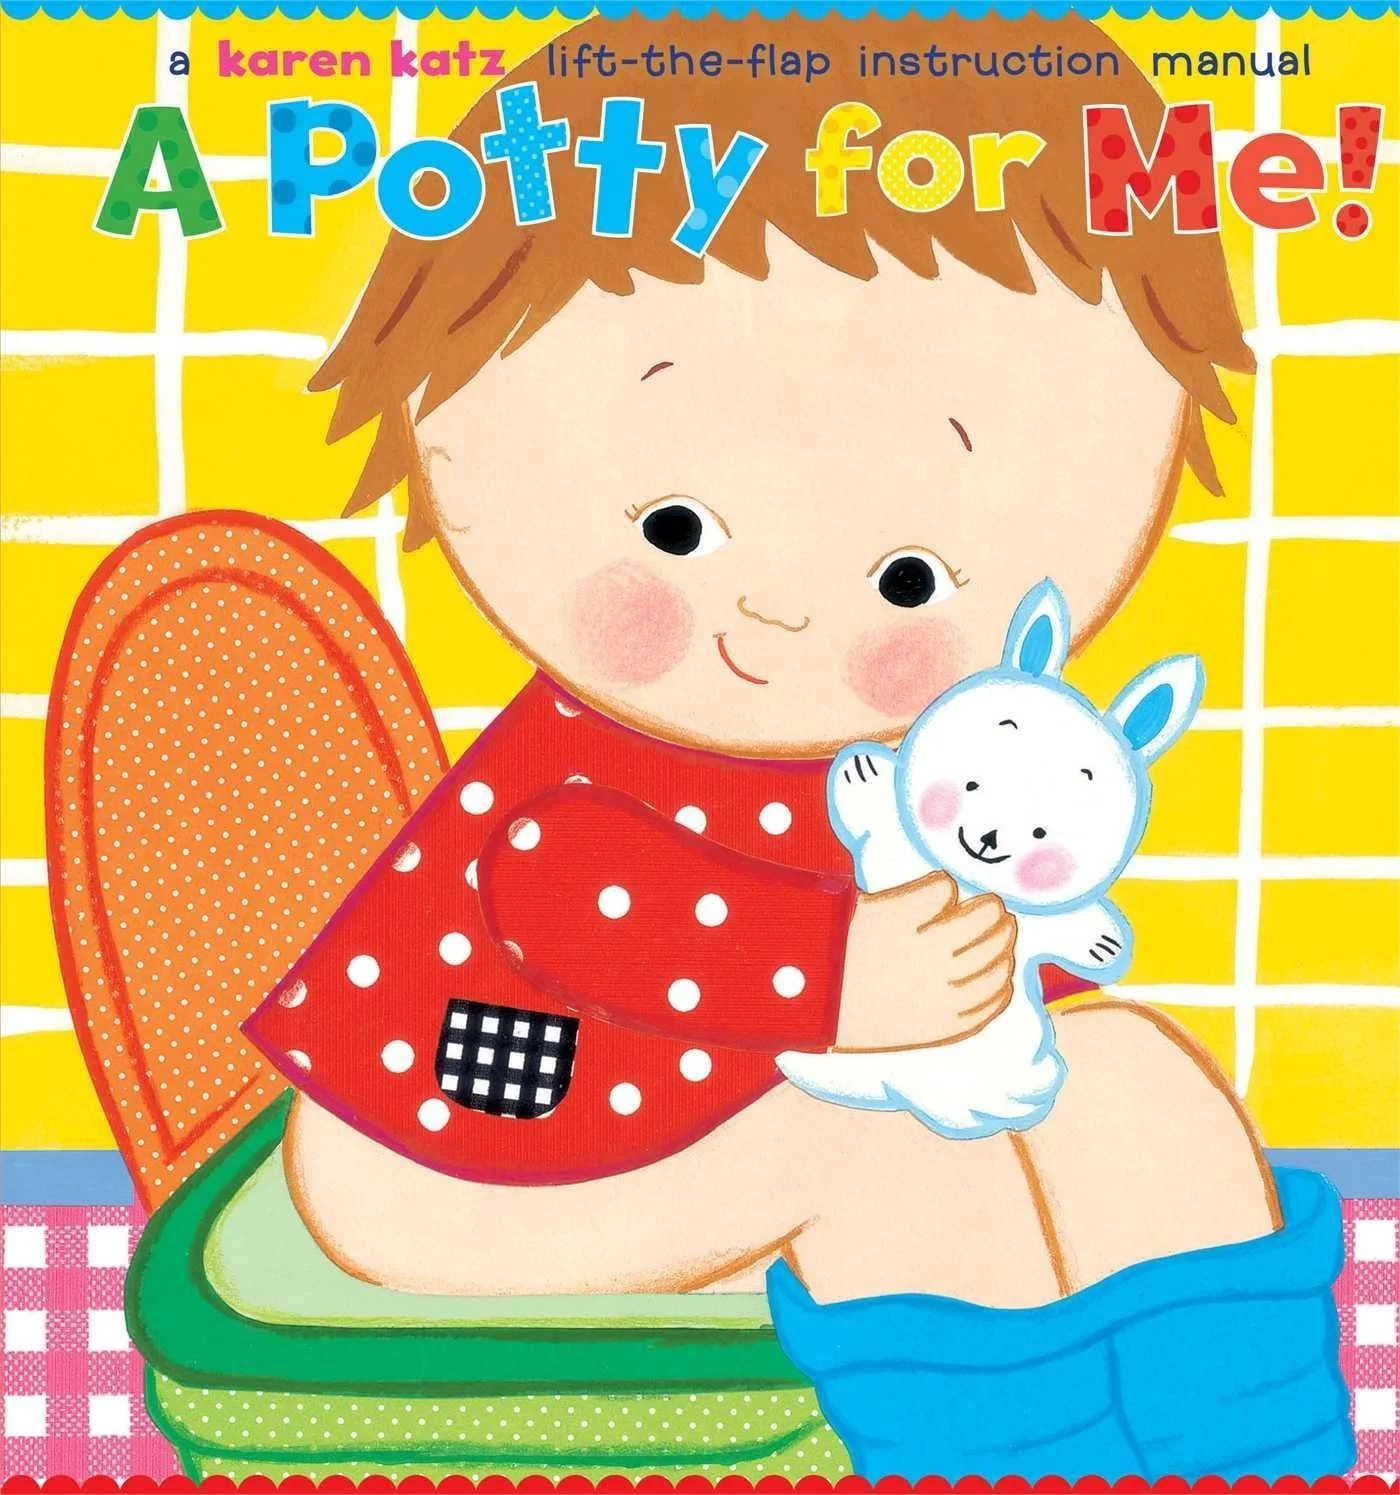 Follow these helpful potty training tips to get your 1 year old toddler trained in no time! Help your little one toilet train fast by following a consistent routine, letting them stay naked around the house, and offer rewards as necessary. The process can start early on by introducing the potty and making sure they have a full understanding before you begin.